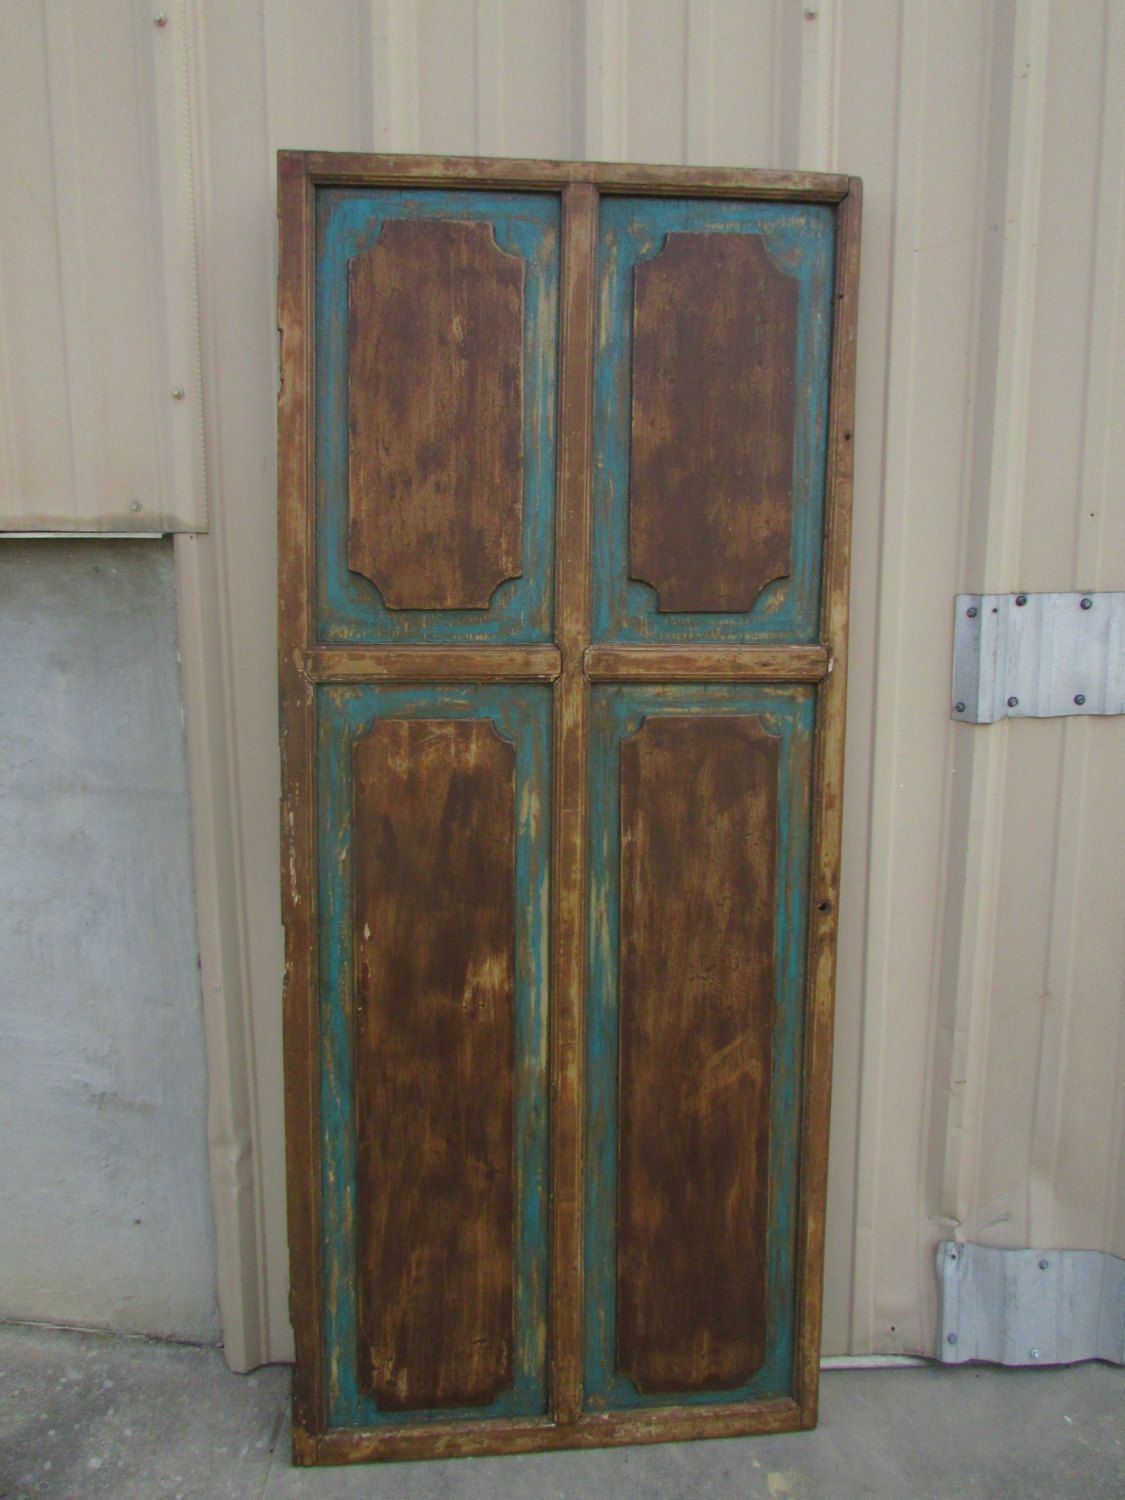 Antique Mexican Old Door Primitive Rustic 32x76 Headboard Table Turquoise Chocolate Brown Barn Doors Old Door Antiques Old Doors